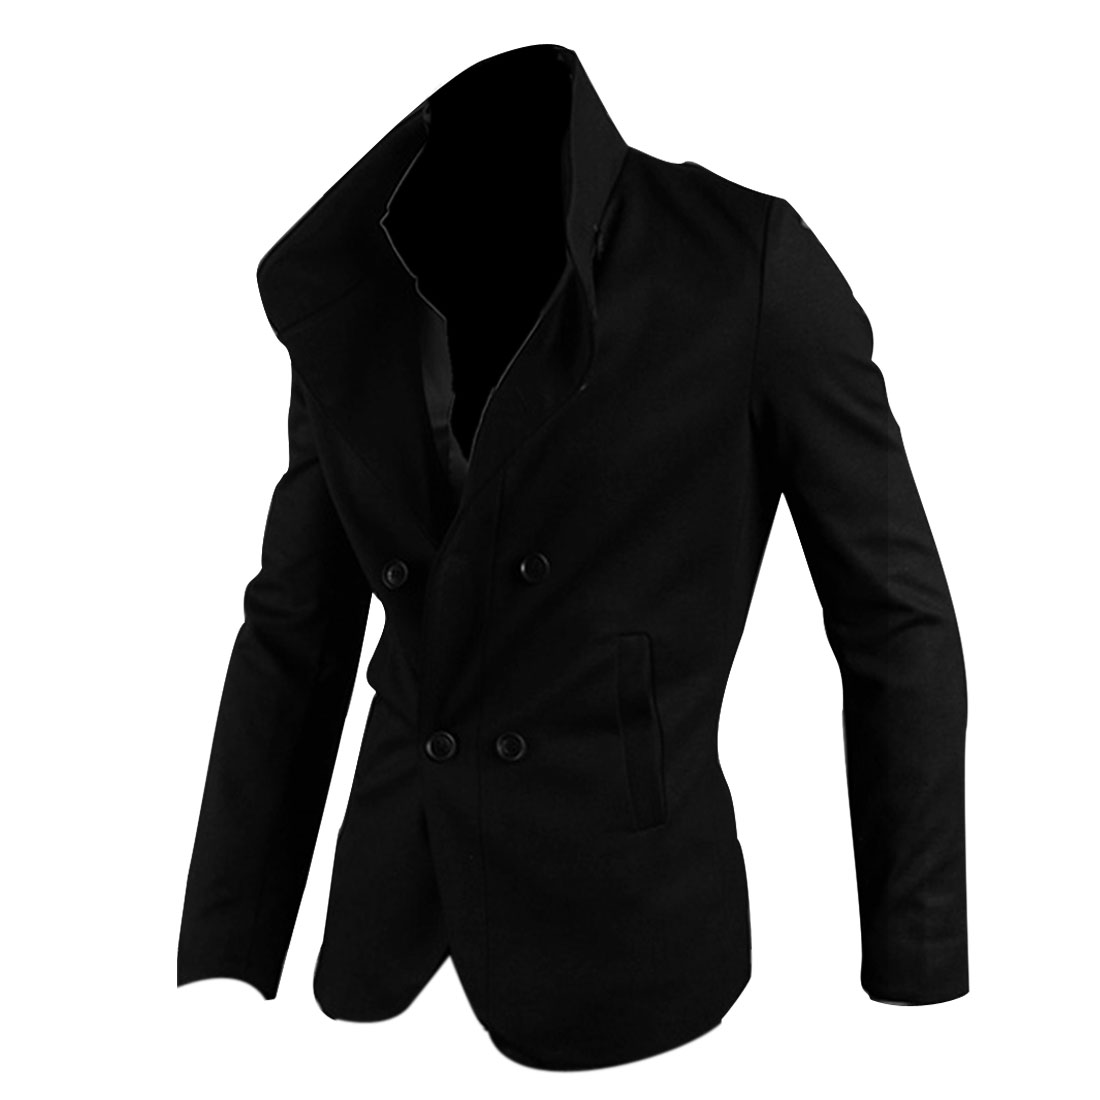 S Men Front Button Closure Long Sleeve Slim Fit Slant Pocket Blazer Black